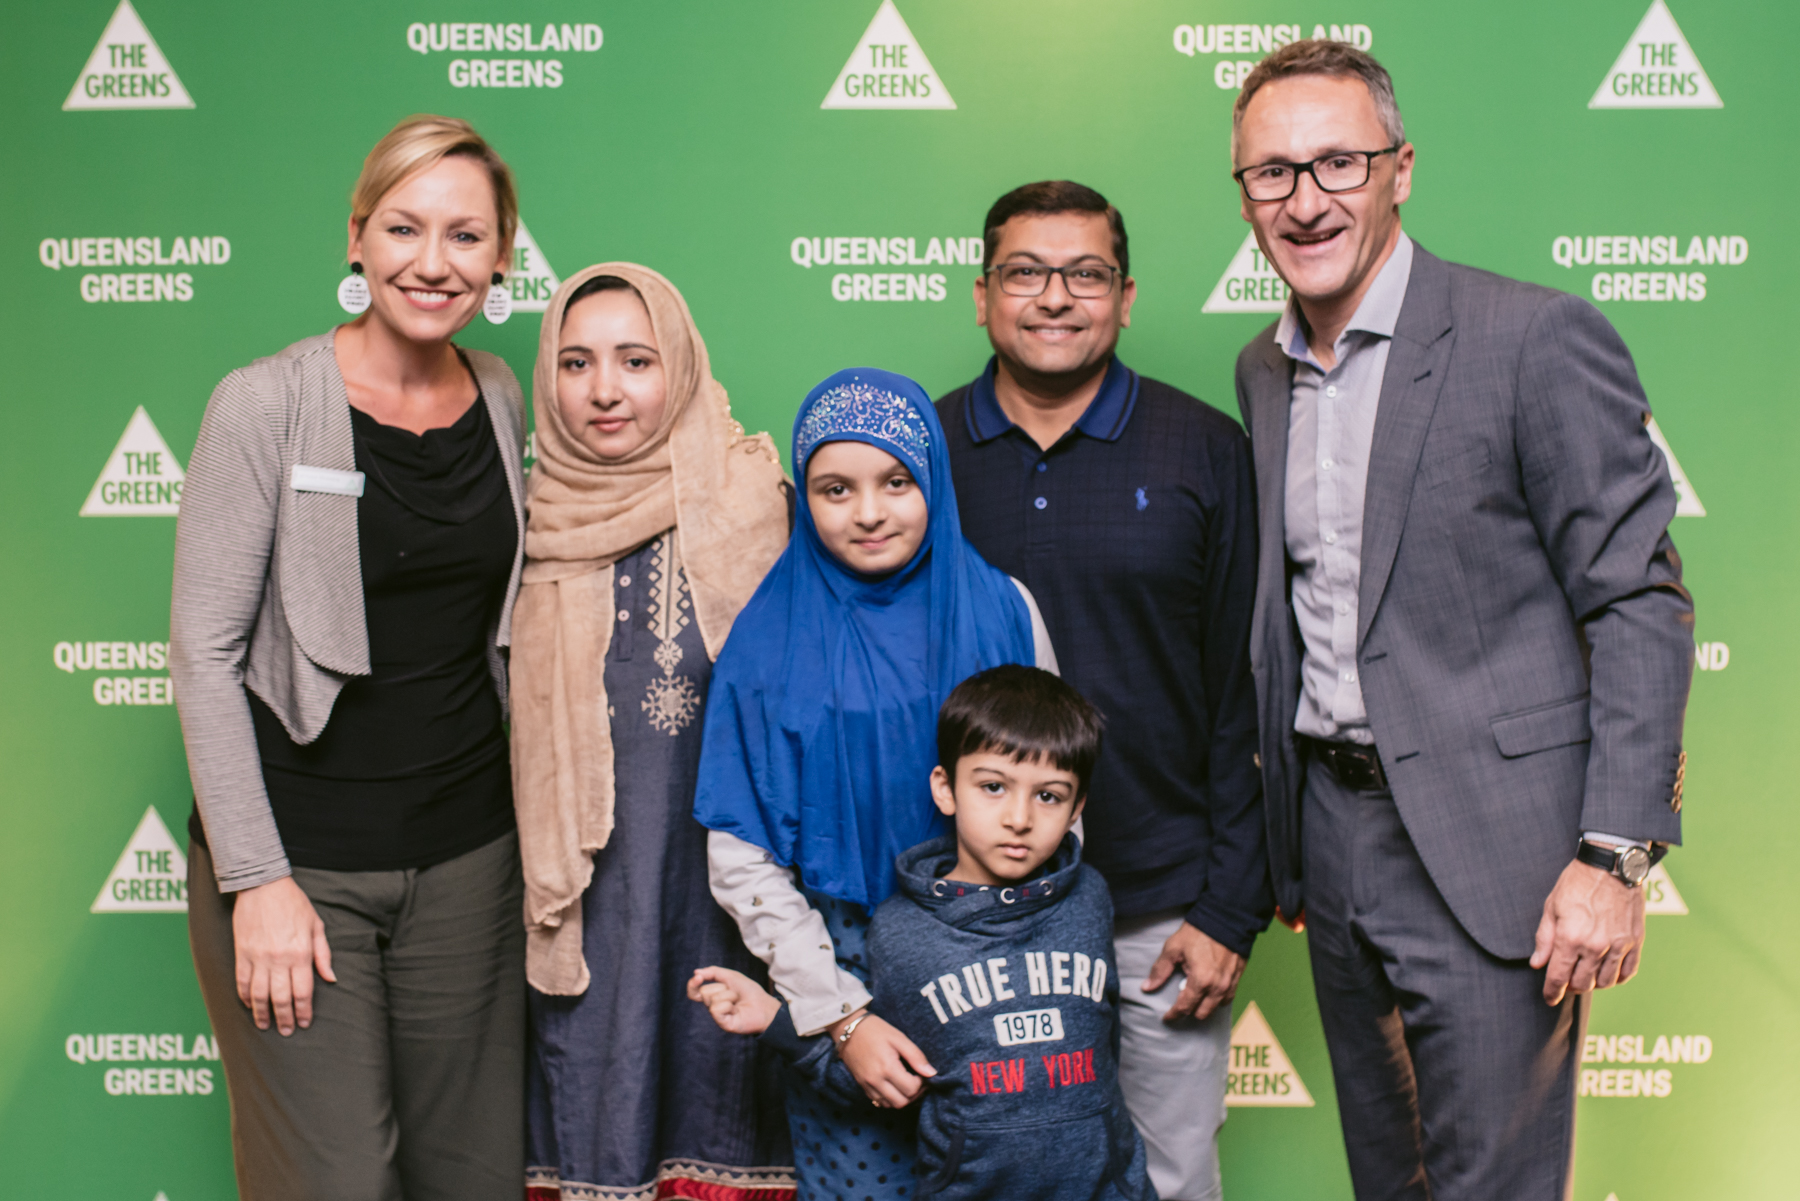 Senators Larissa Waters and Richar Di Natale with attendees of the Community Iftar Dinner thrown by the Australian Greens in May, 2019.